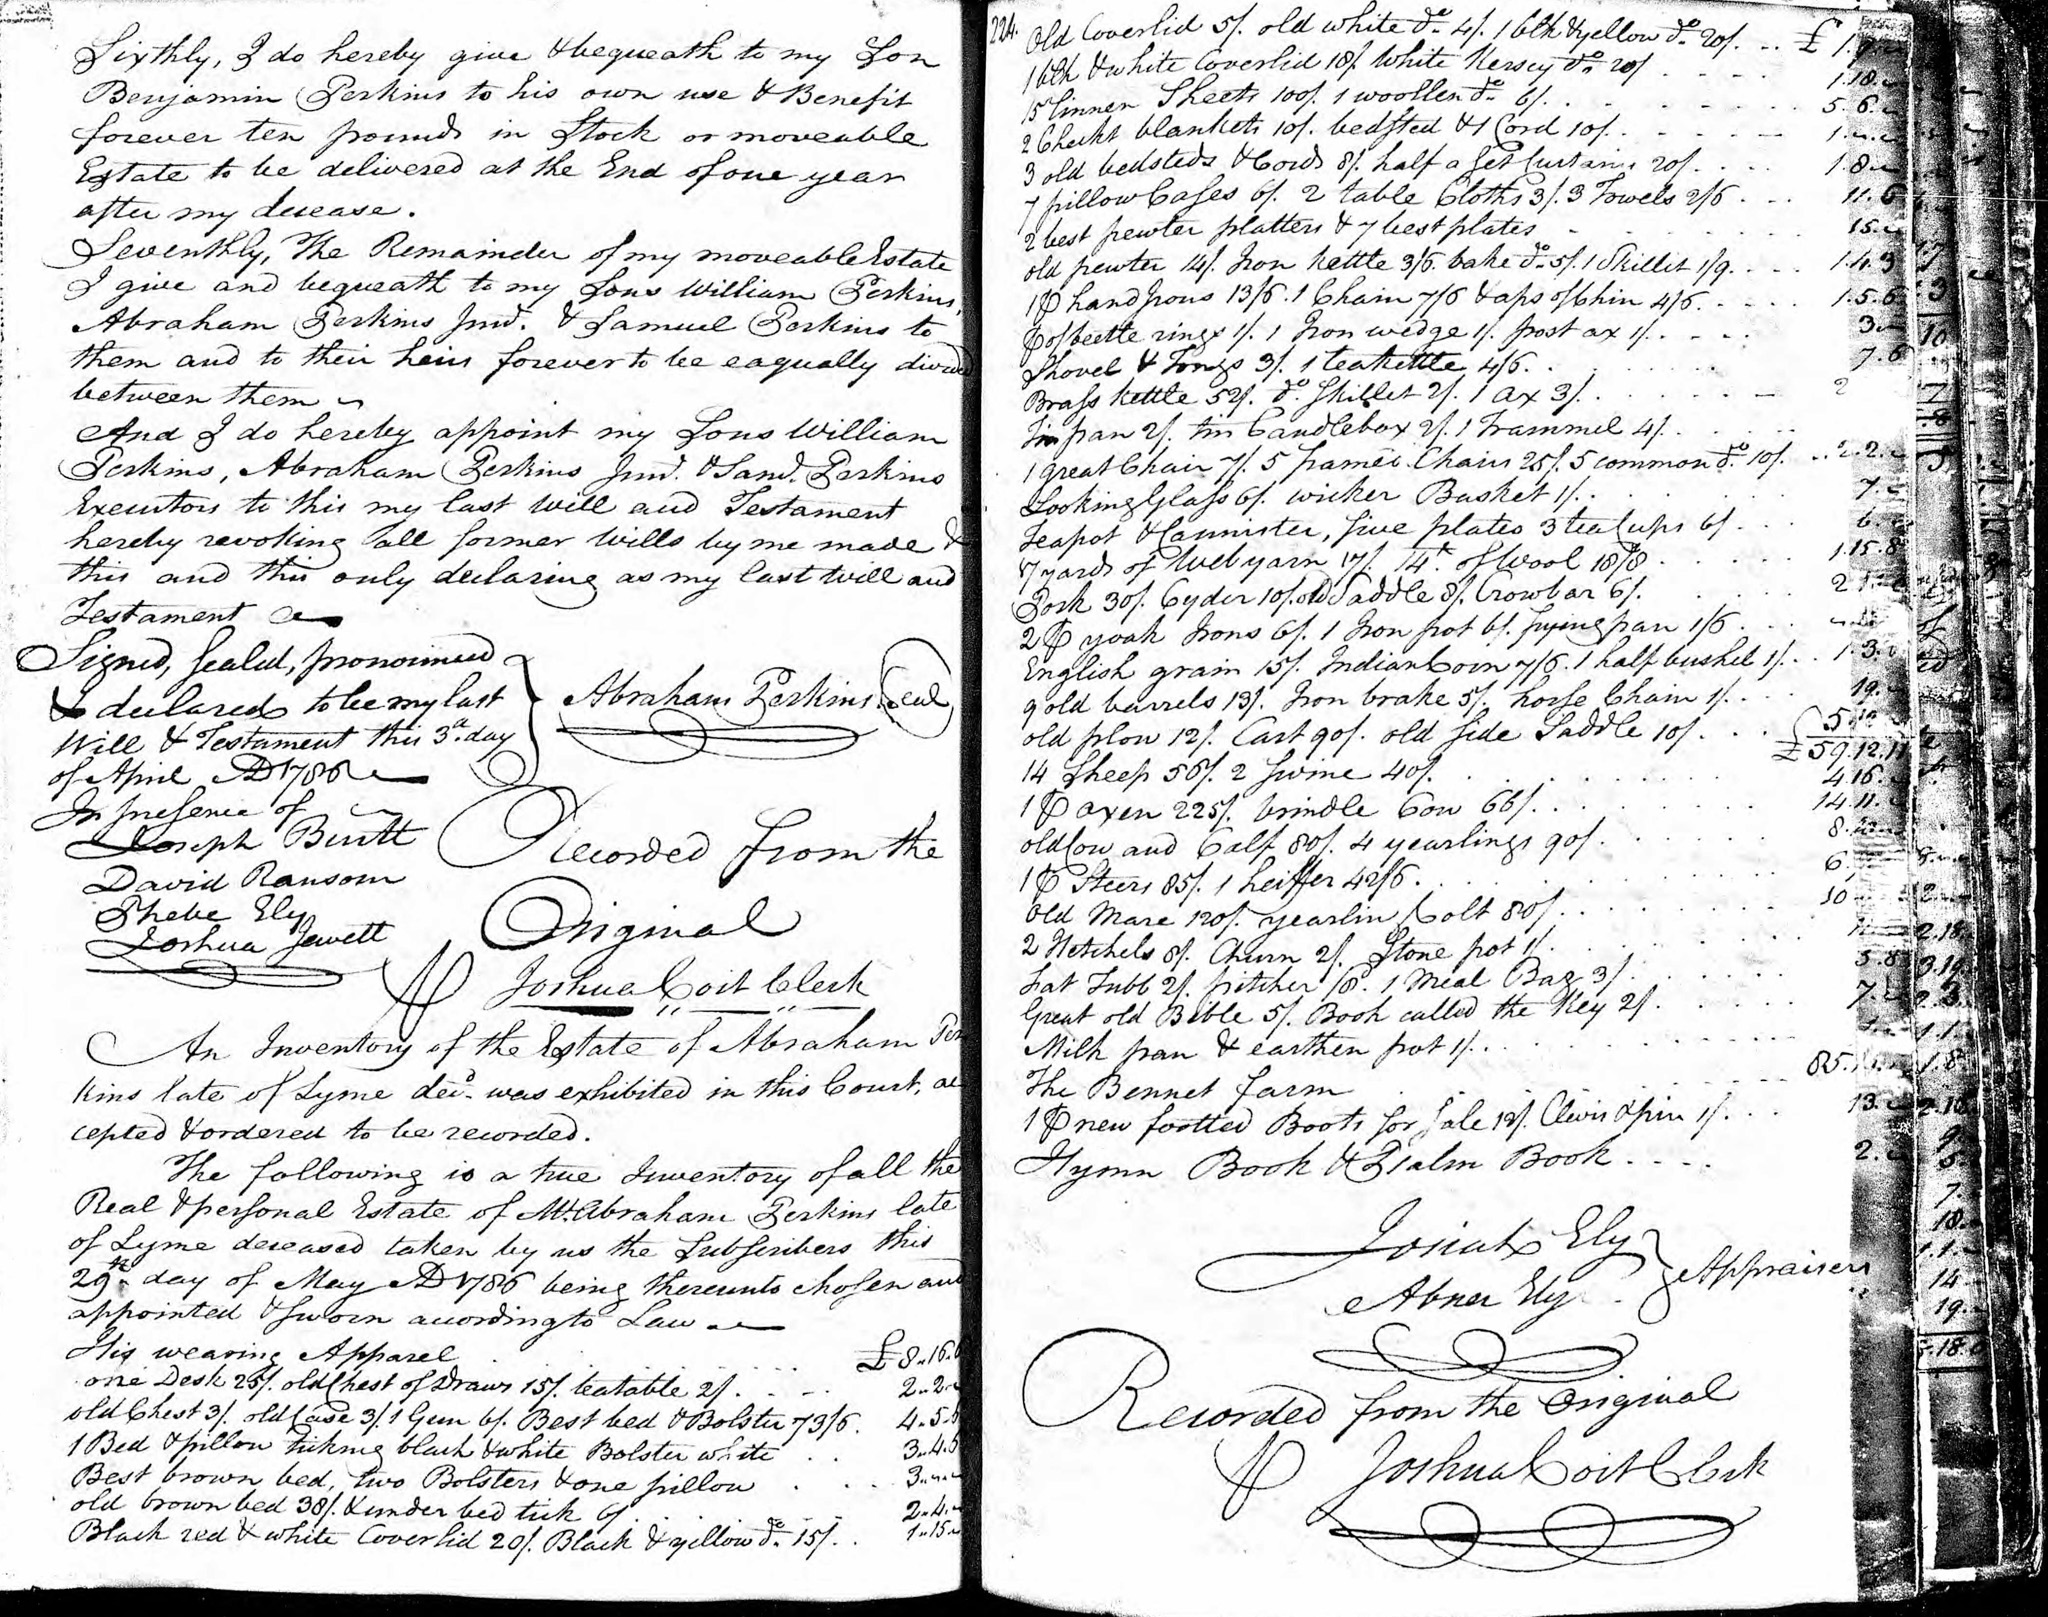 1786 Will of Abraham Perkins (cont)